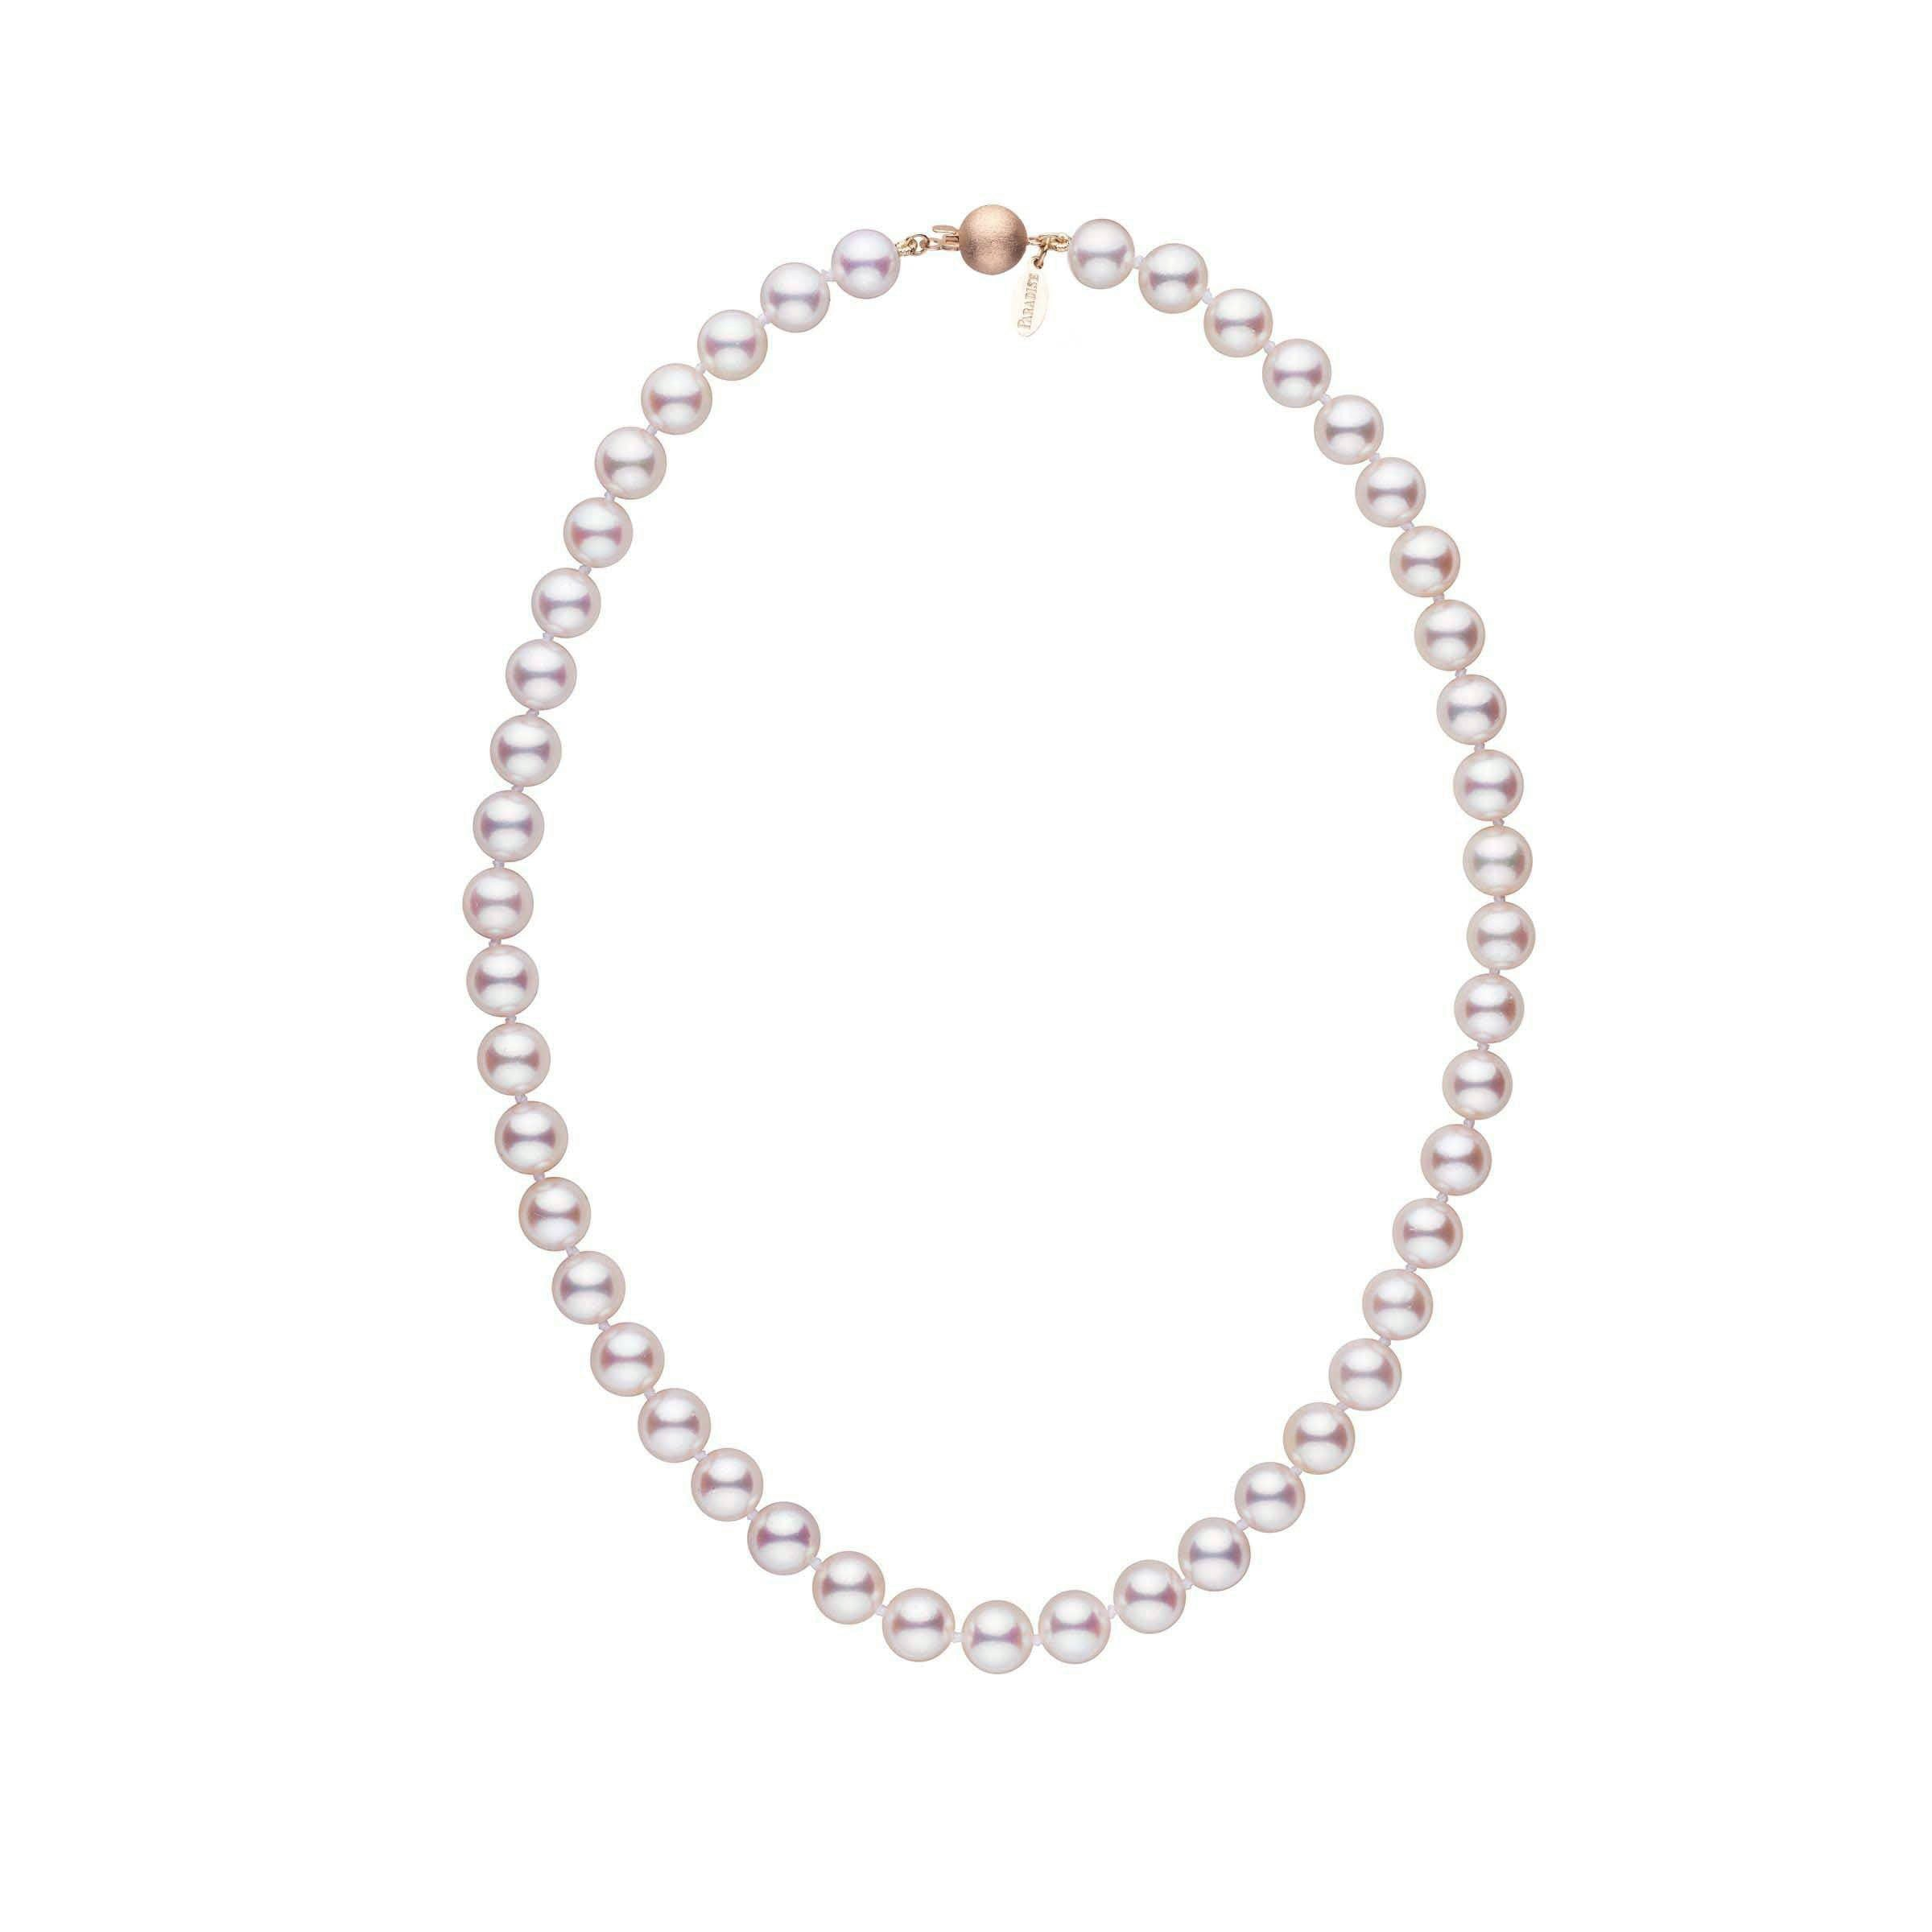 8.0-8.5 mm 16 Inch White Hanadama Akoya Pearl Necklace